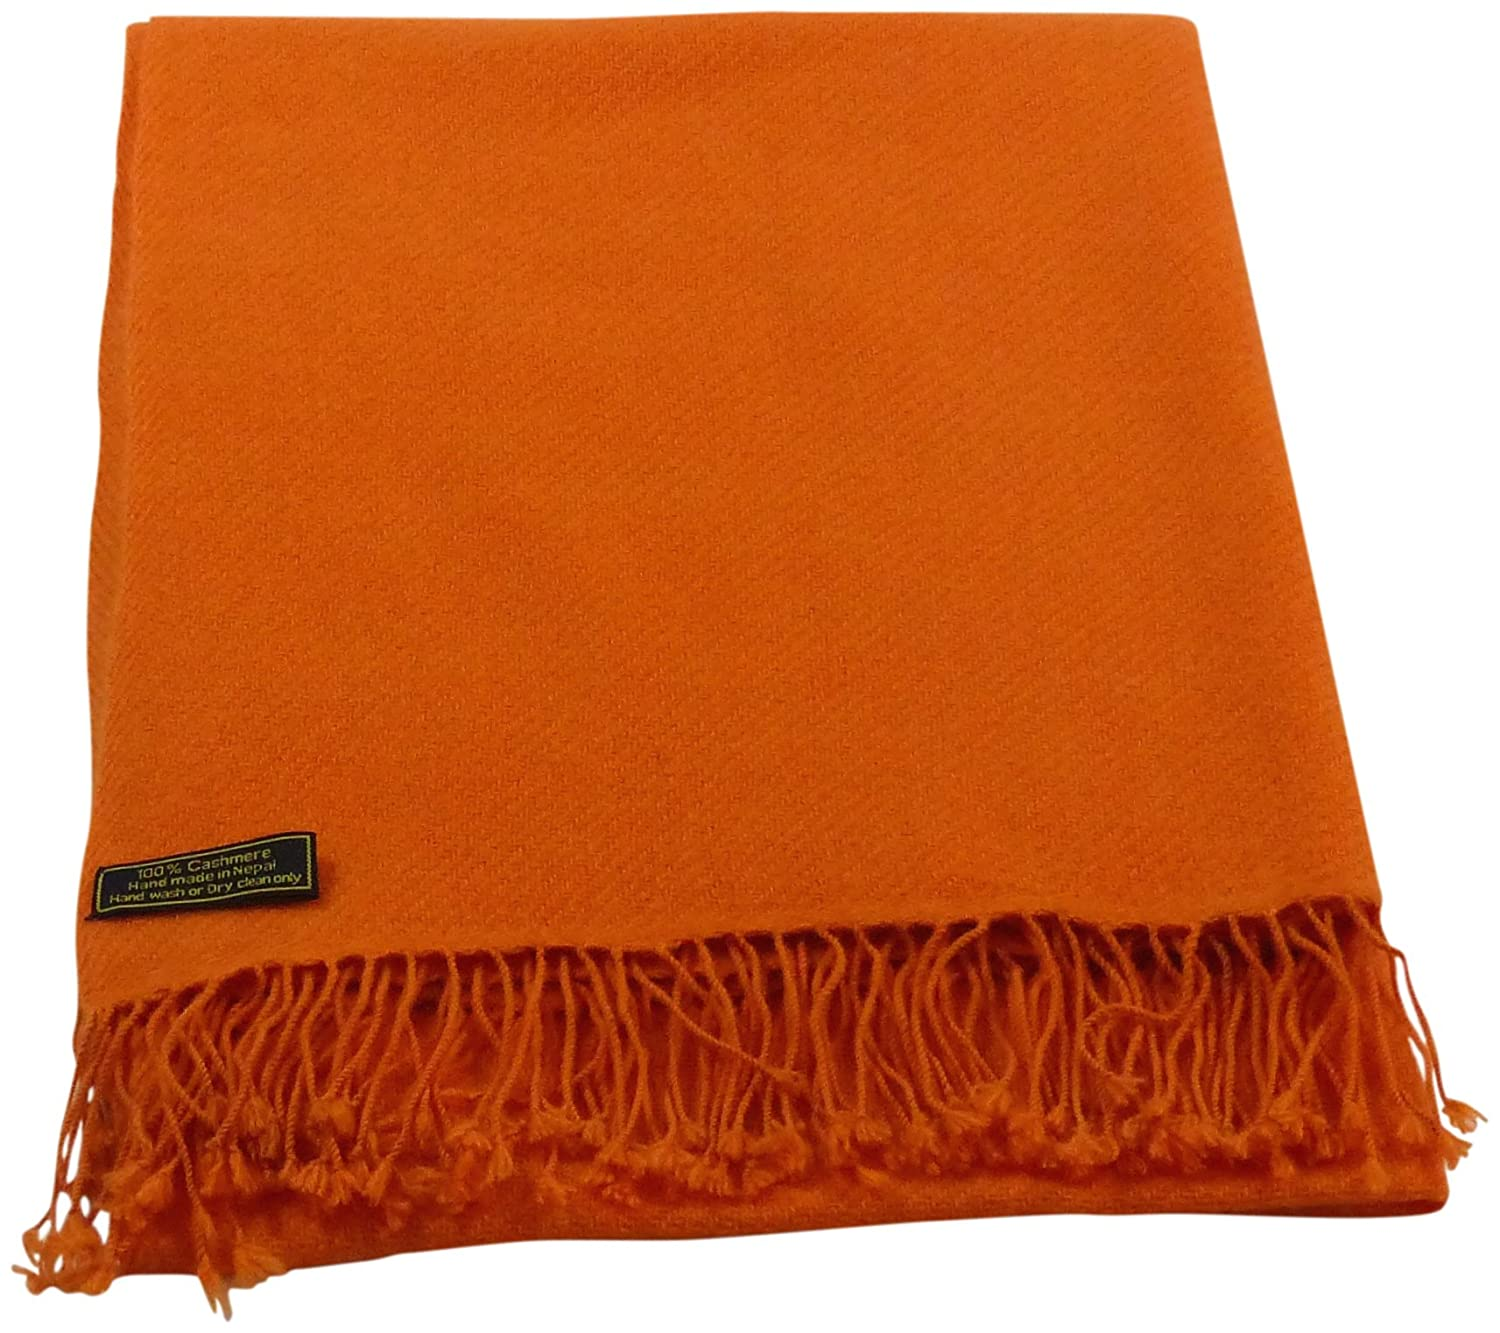 orange Beige High Grade 100% Cashmere Shawl Scarf Wrap Hand Made in Nepal NEW